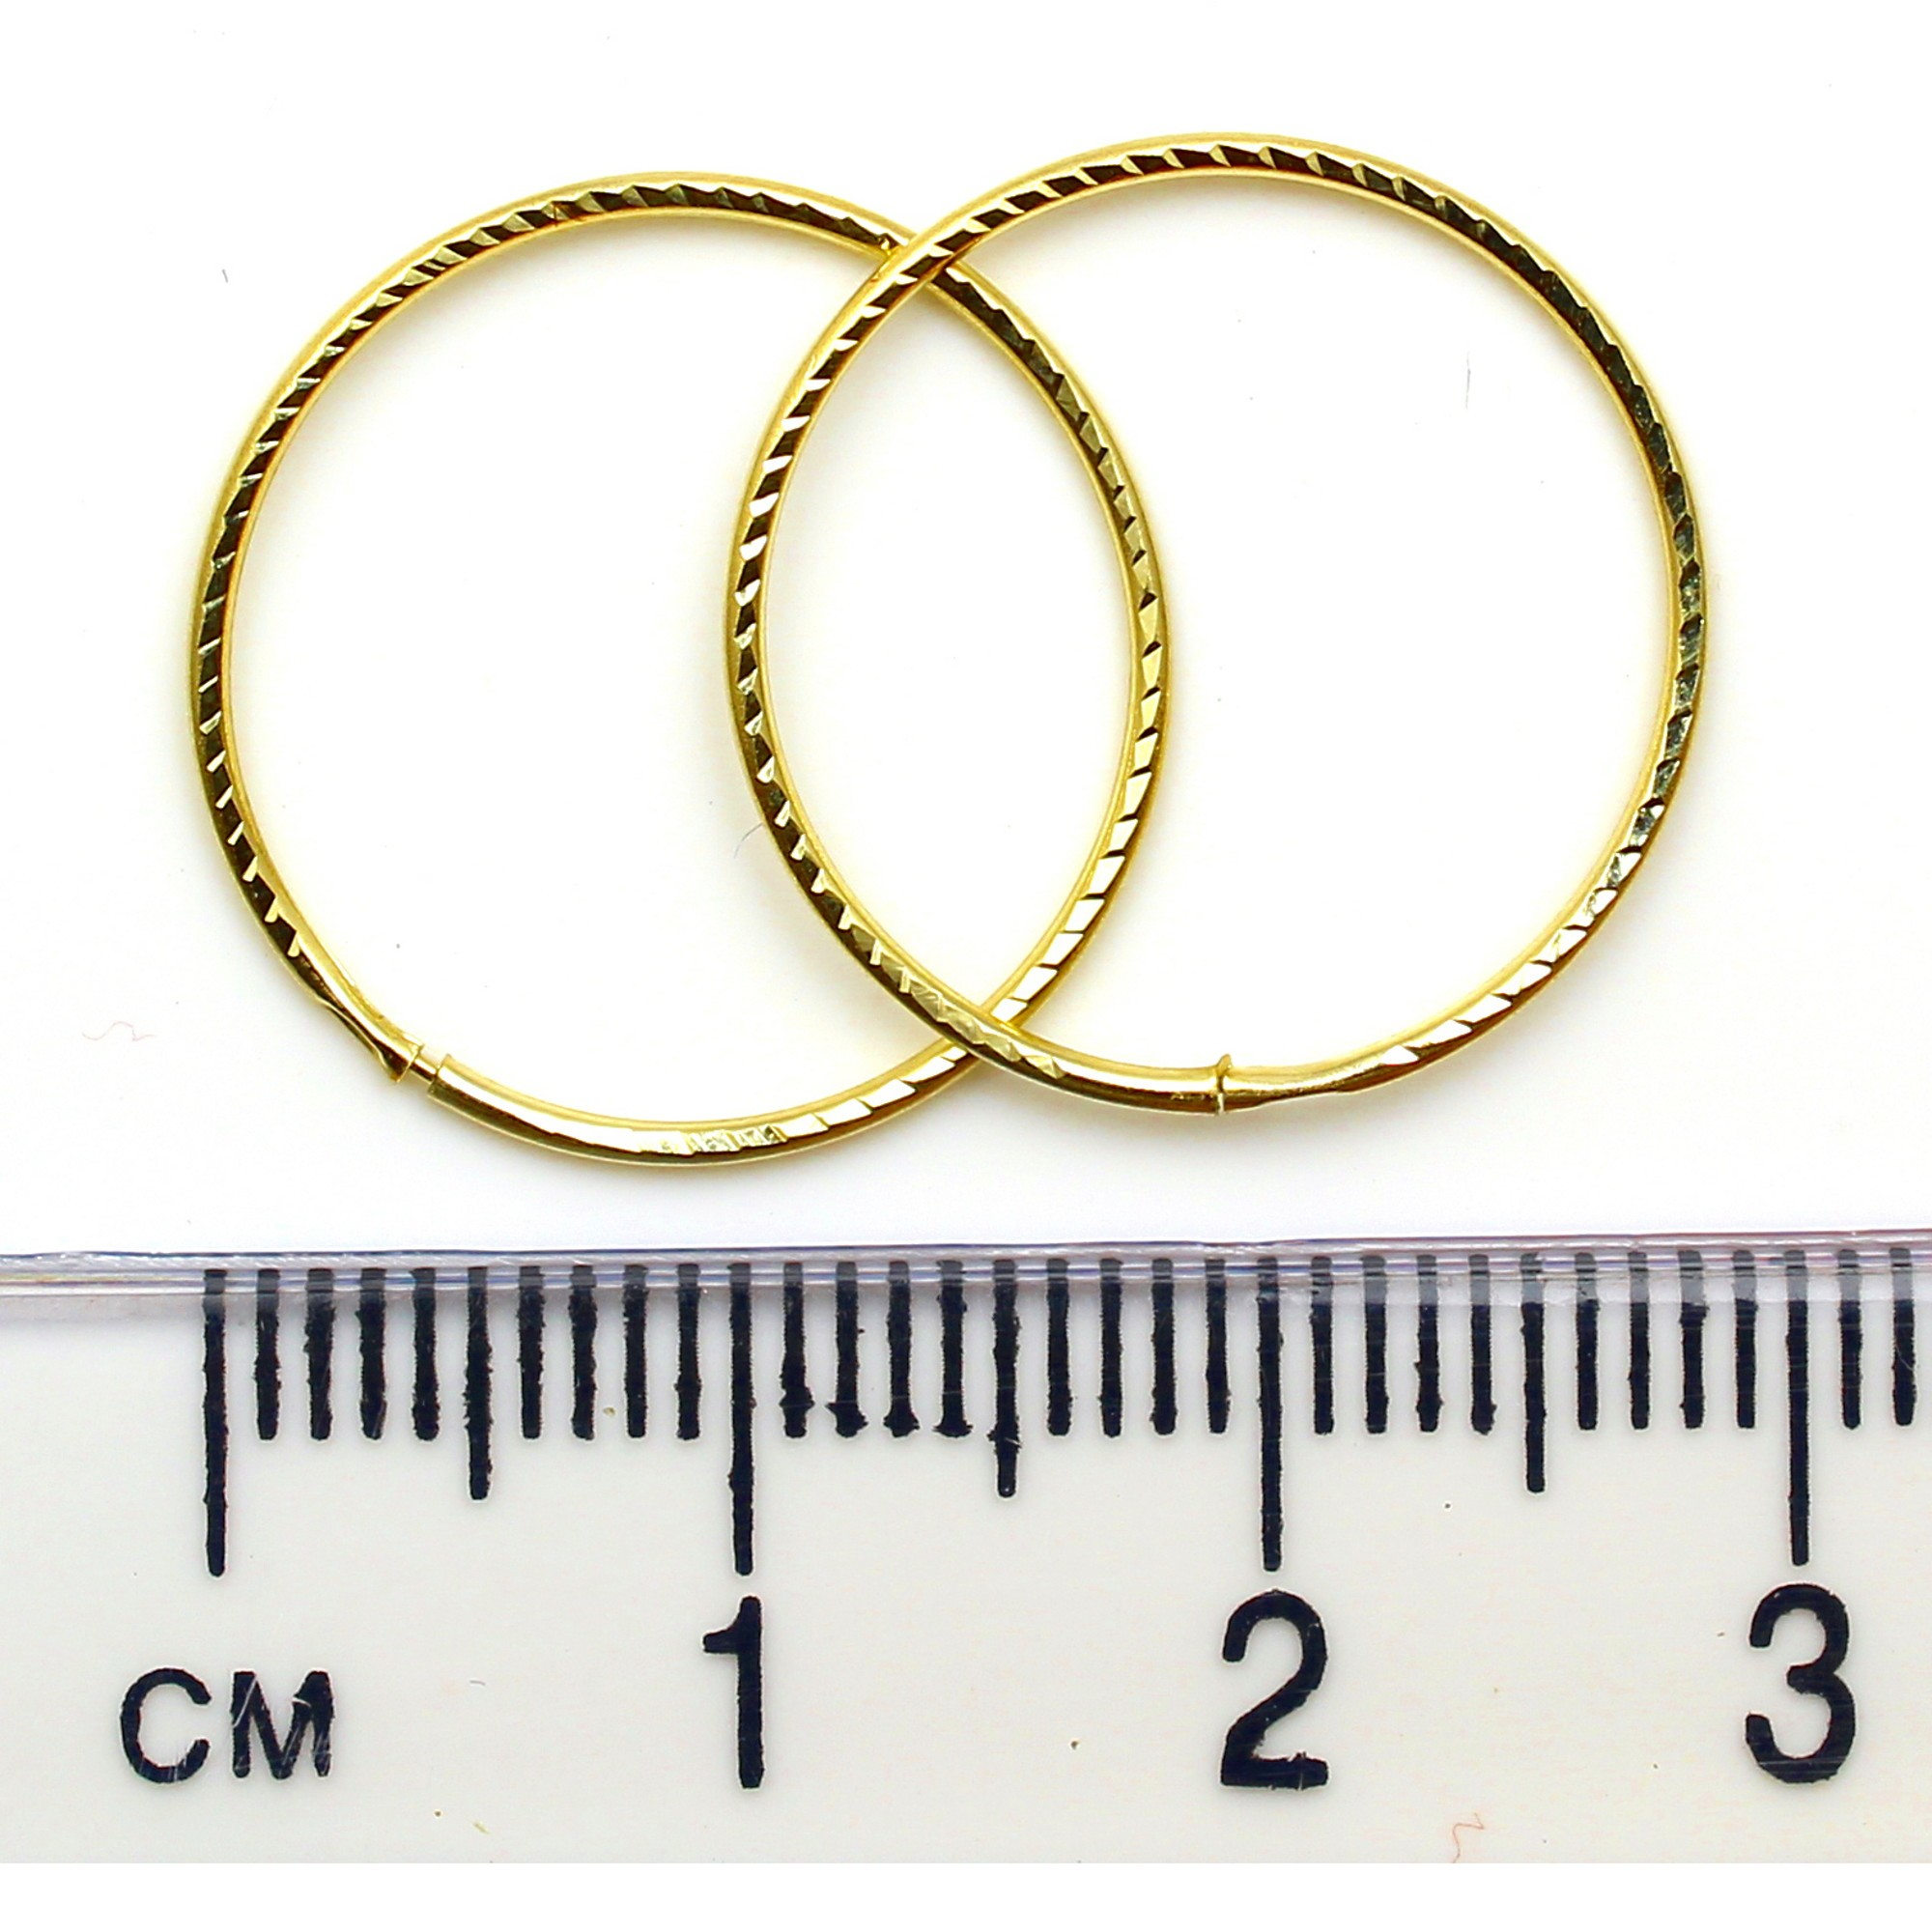 Arranview Jewellery 9ct yellow gold 12mm plain sleeper hoops (1 Pair) zKOtt4eGAf